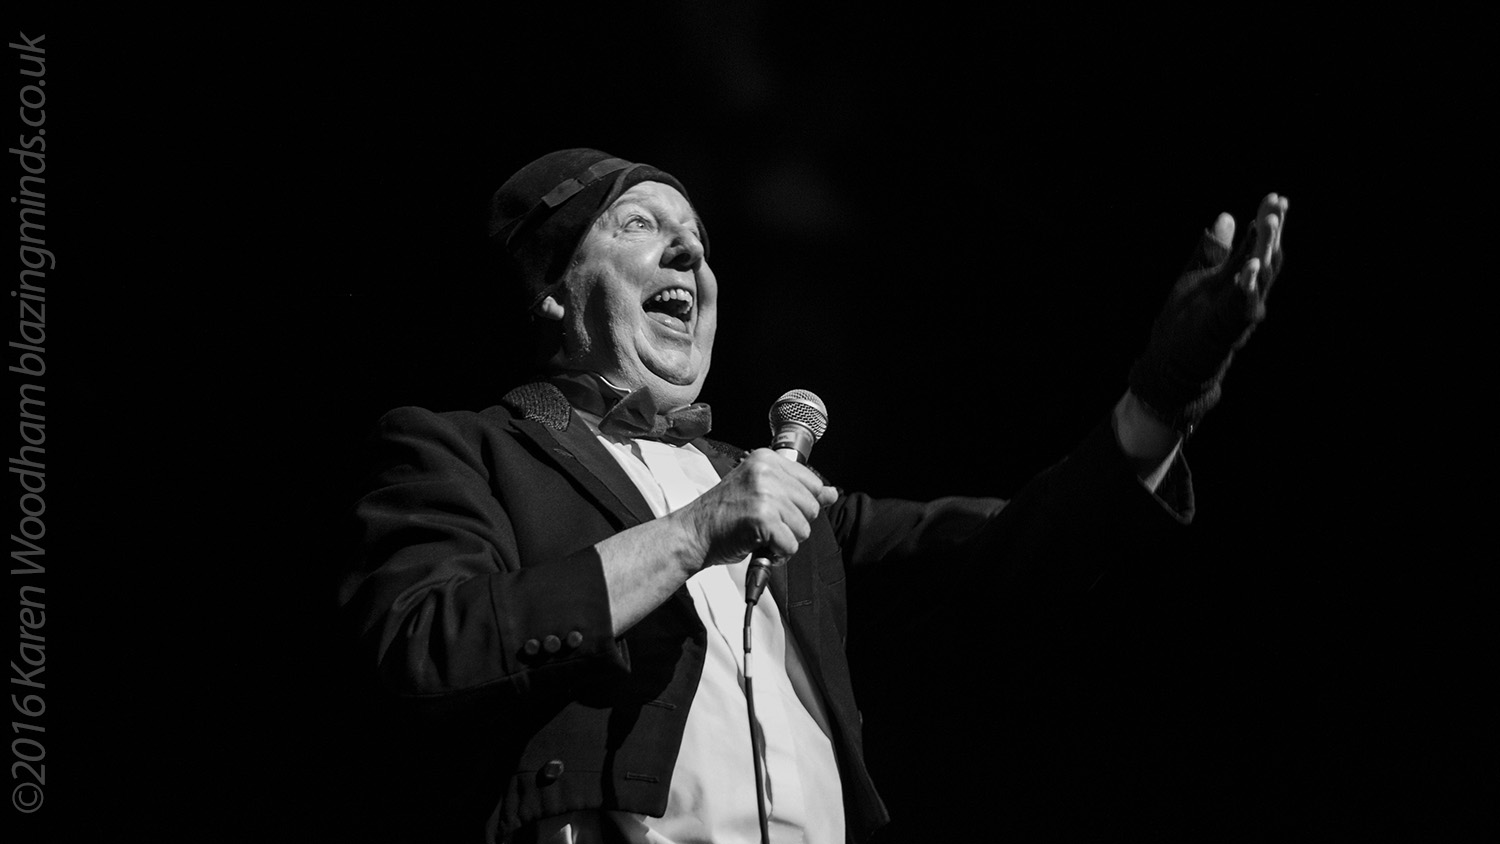 Jimmy Cricket Live at the Rhyl Pavilion